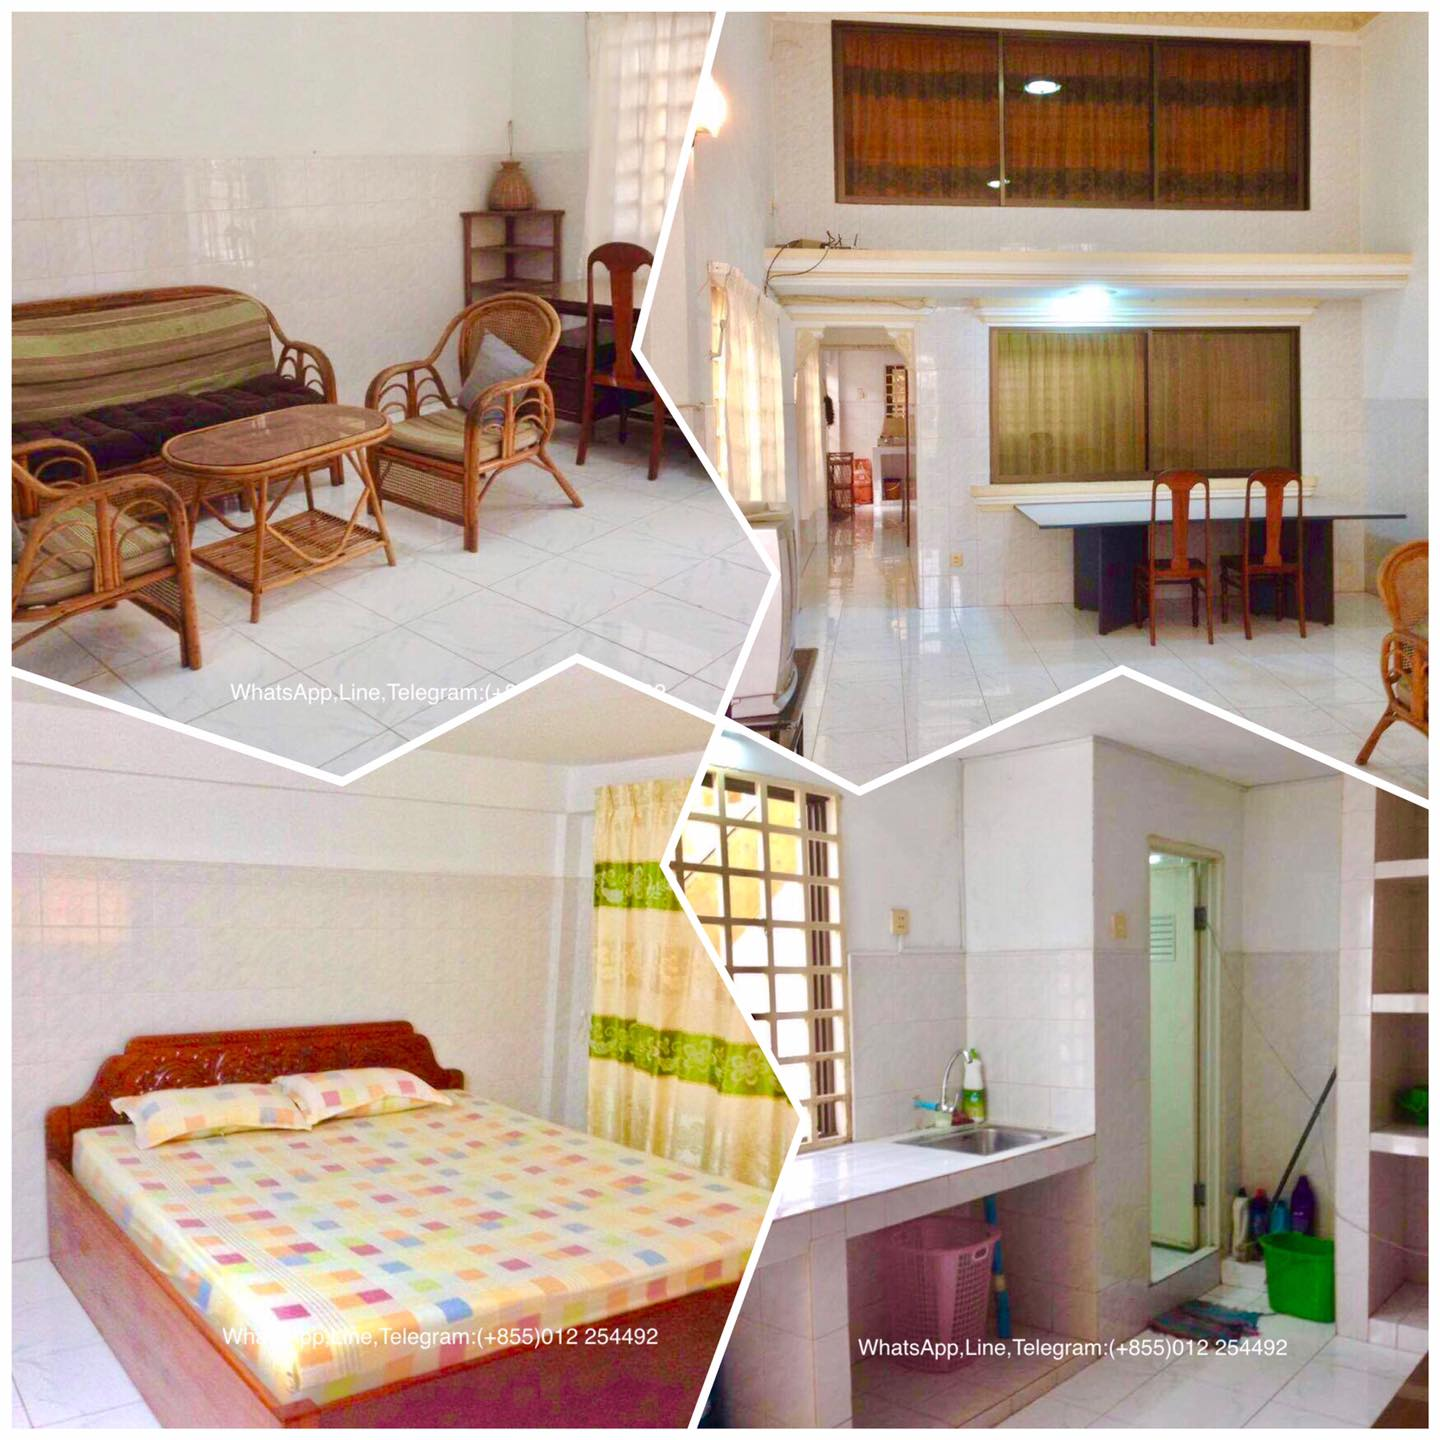 3 Beds 3 Baths Fully Furnished Apartment for Rent,BKK3